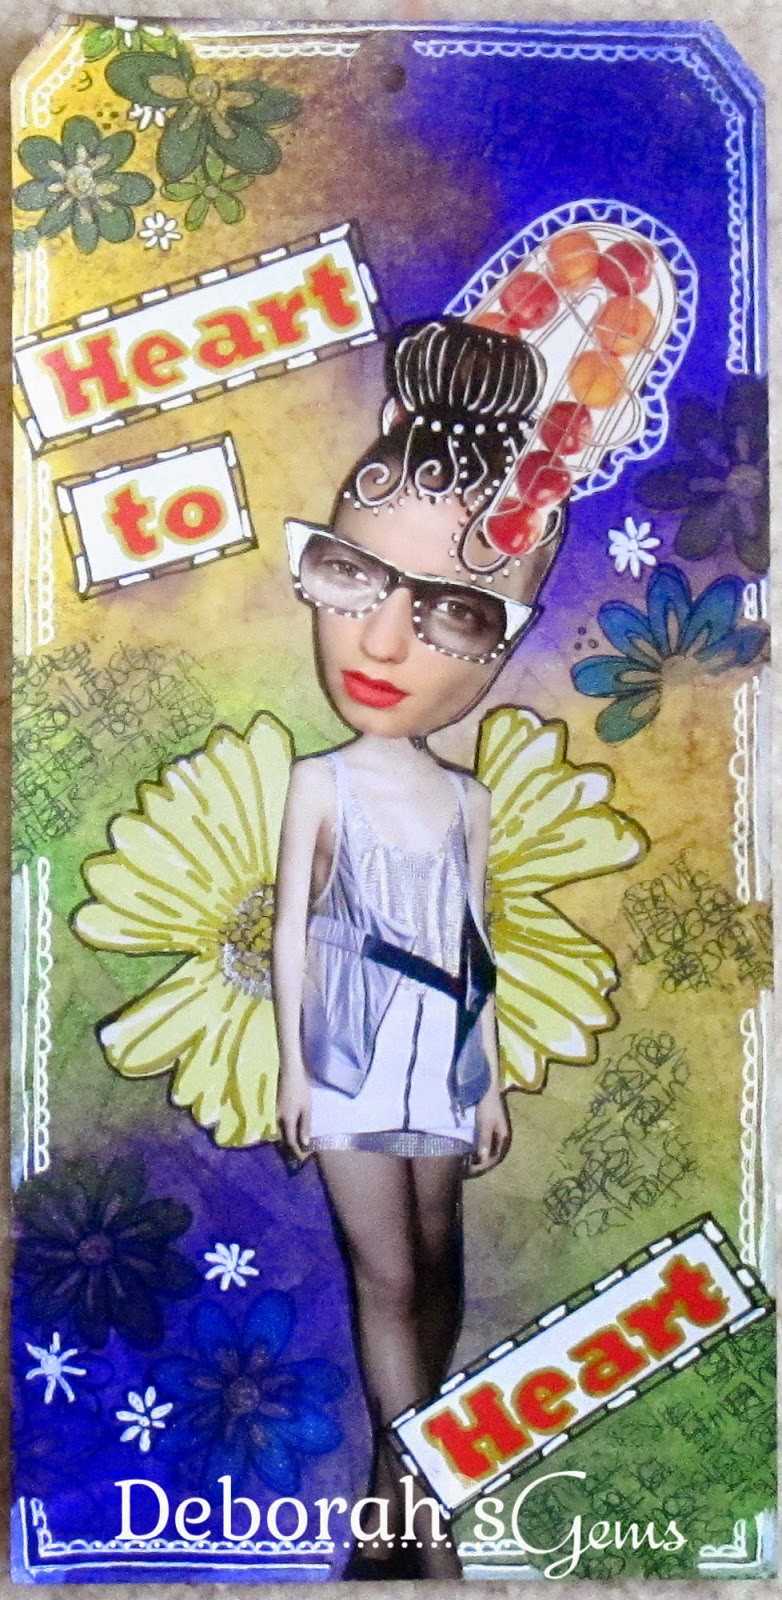 Cool Tag Lady - photo by Deborah Frings - Deborah's Gems